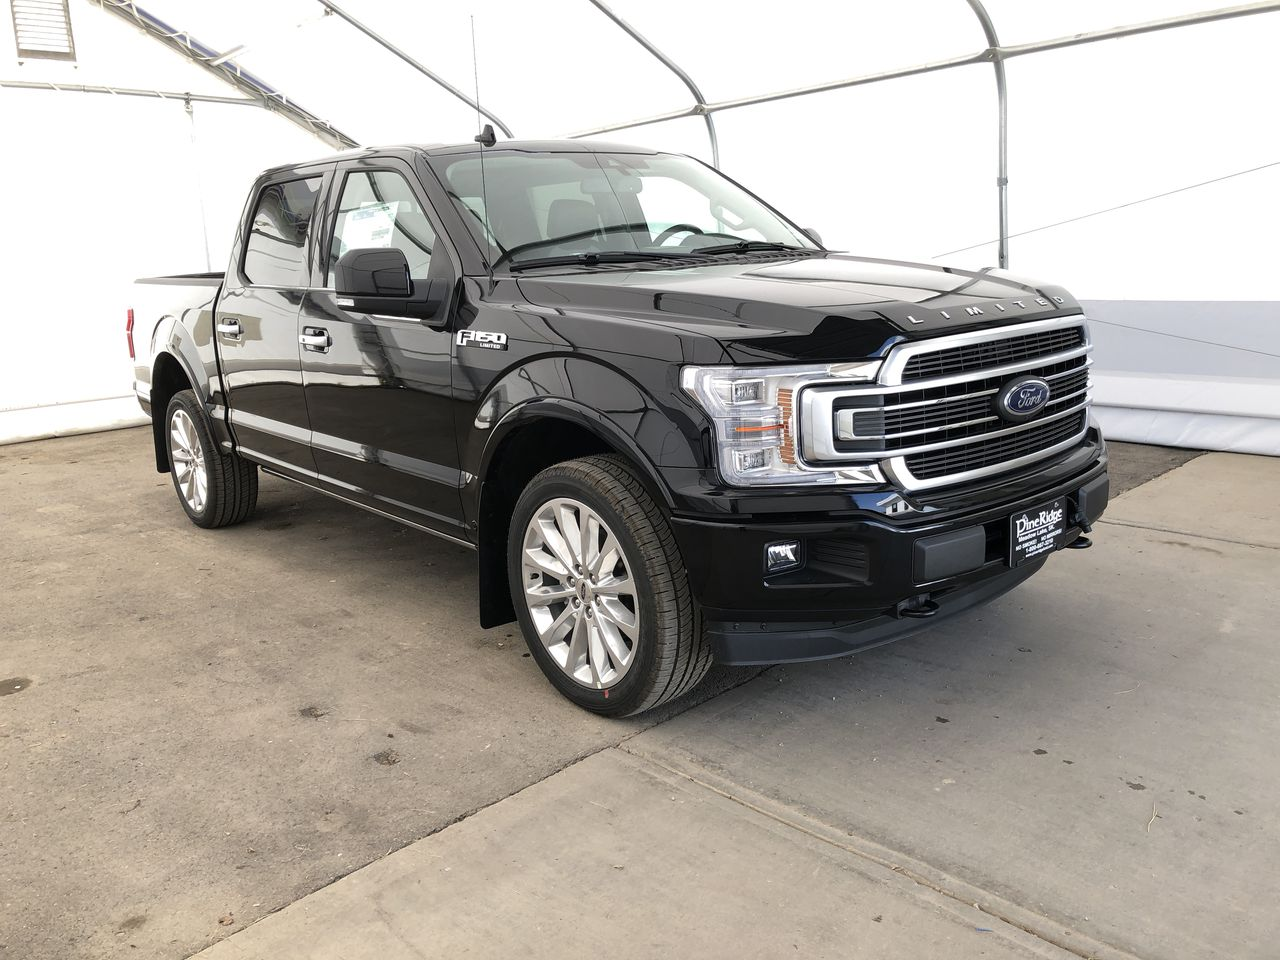 2019 Ford F-150 Limited (0N6477) Main Image